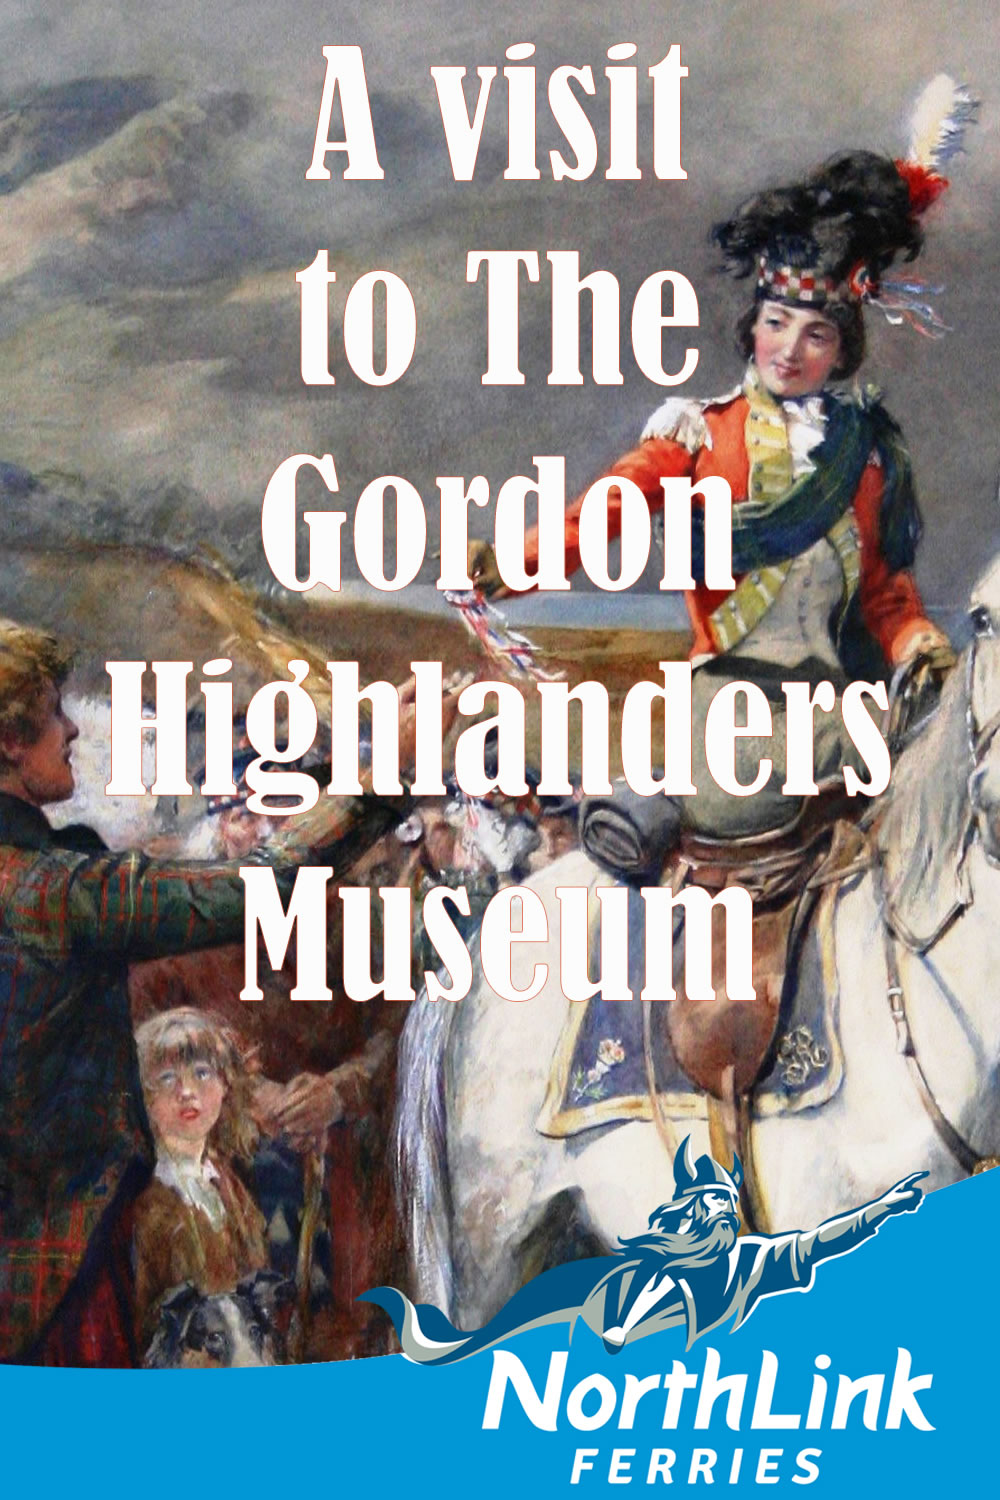 A visit to The Gordon Highlanders Museum